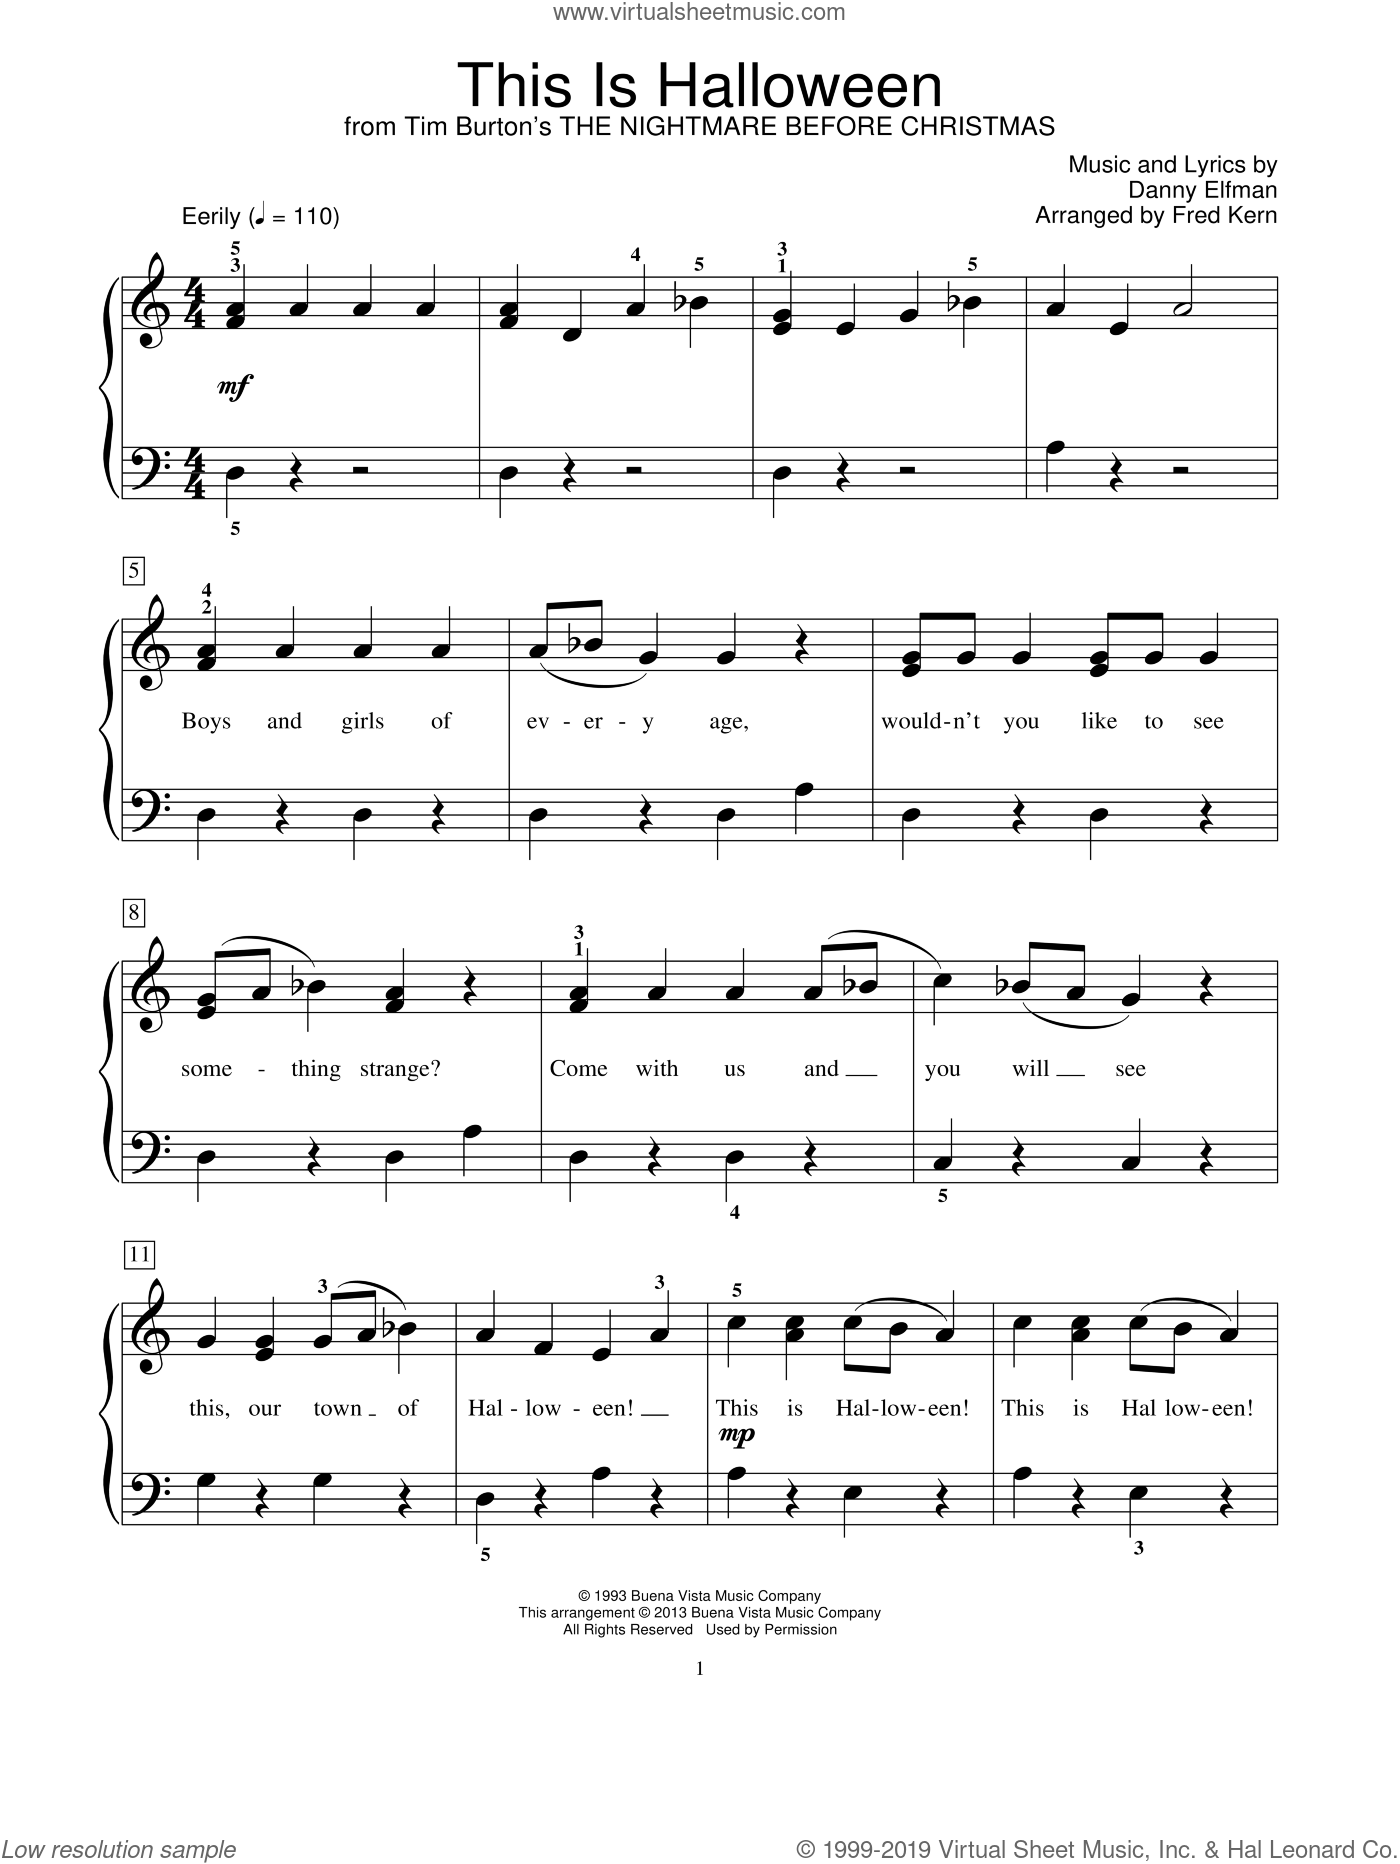 This Is Halloween sheet music for piano solo (elementary) by Fred Kern